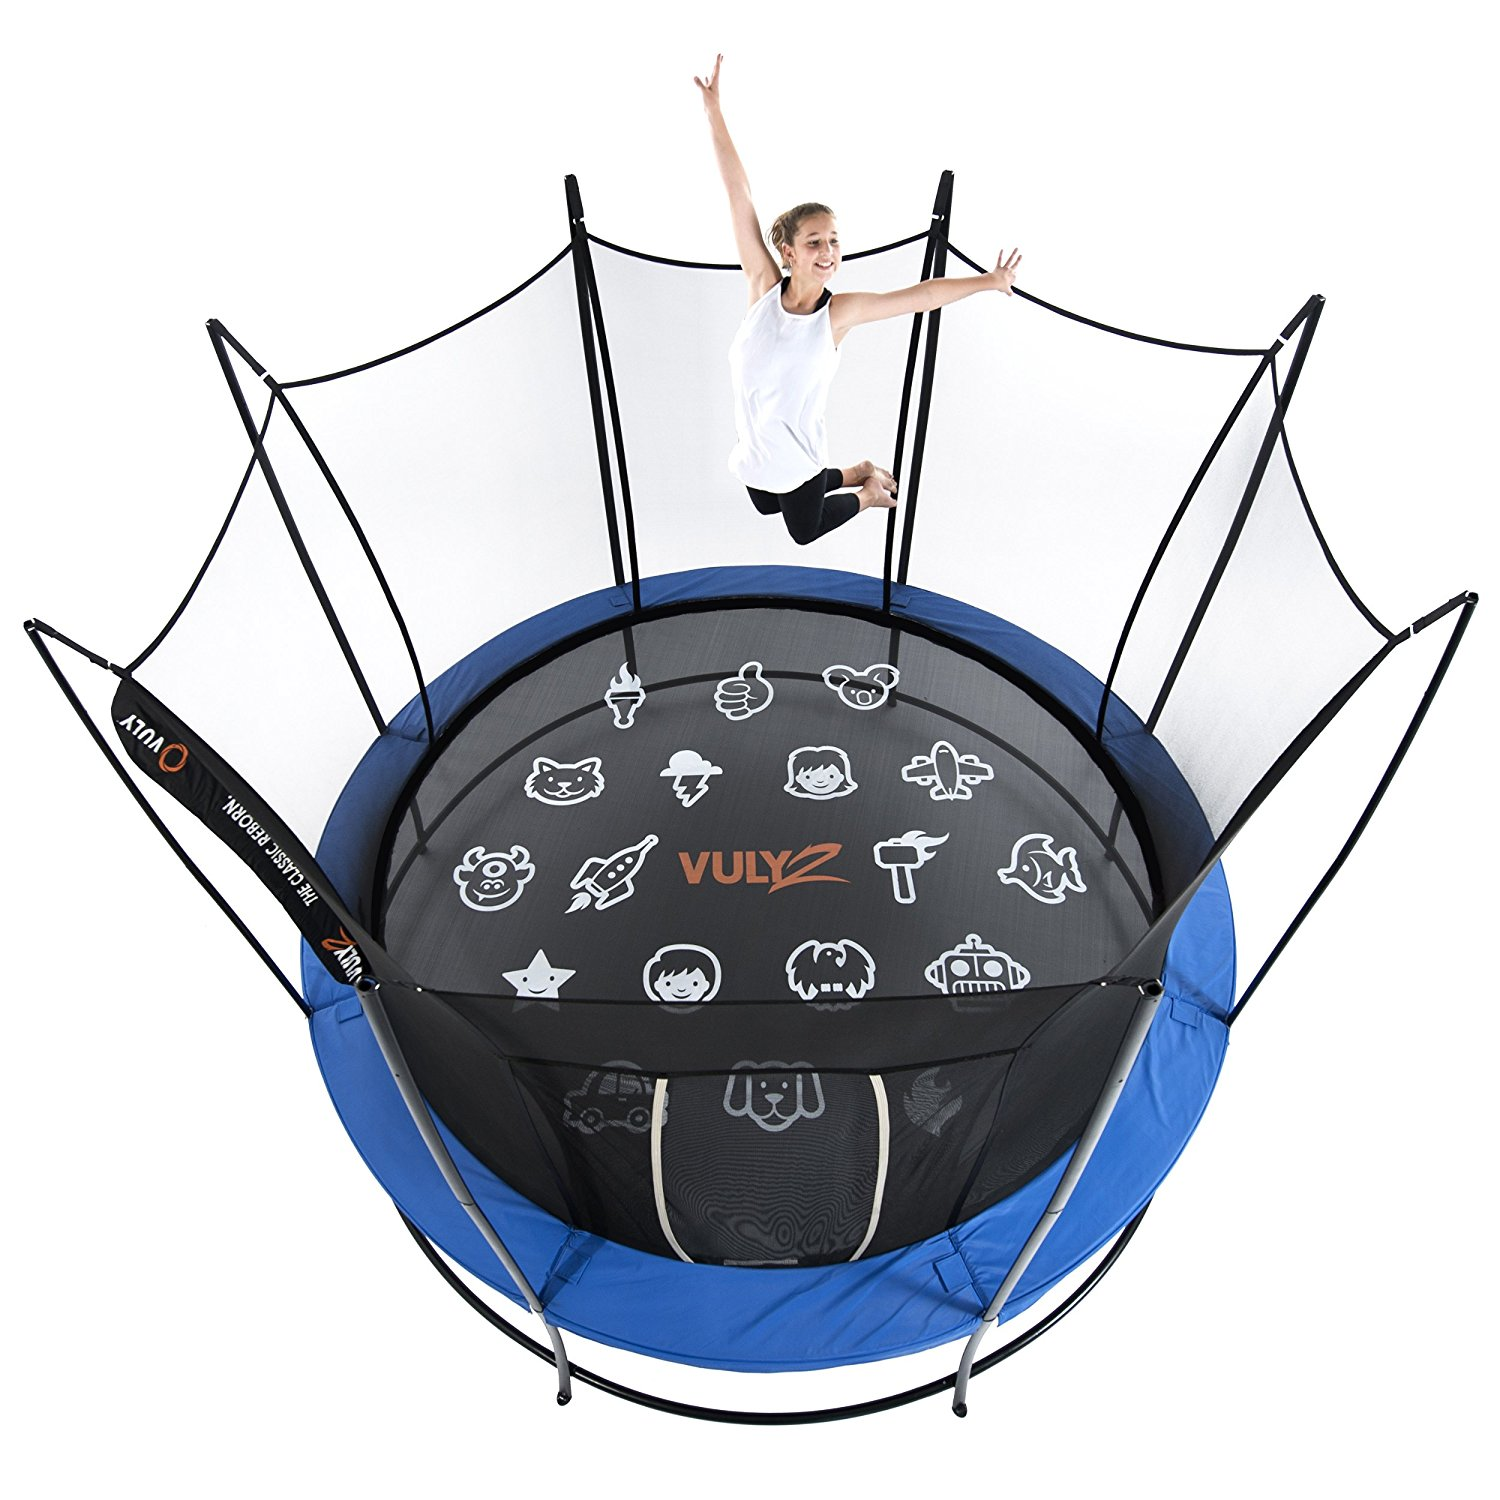 Vuly 2 10 Foot Trampoline